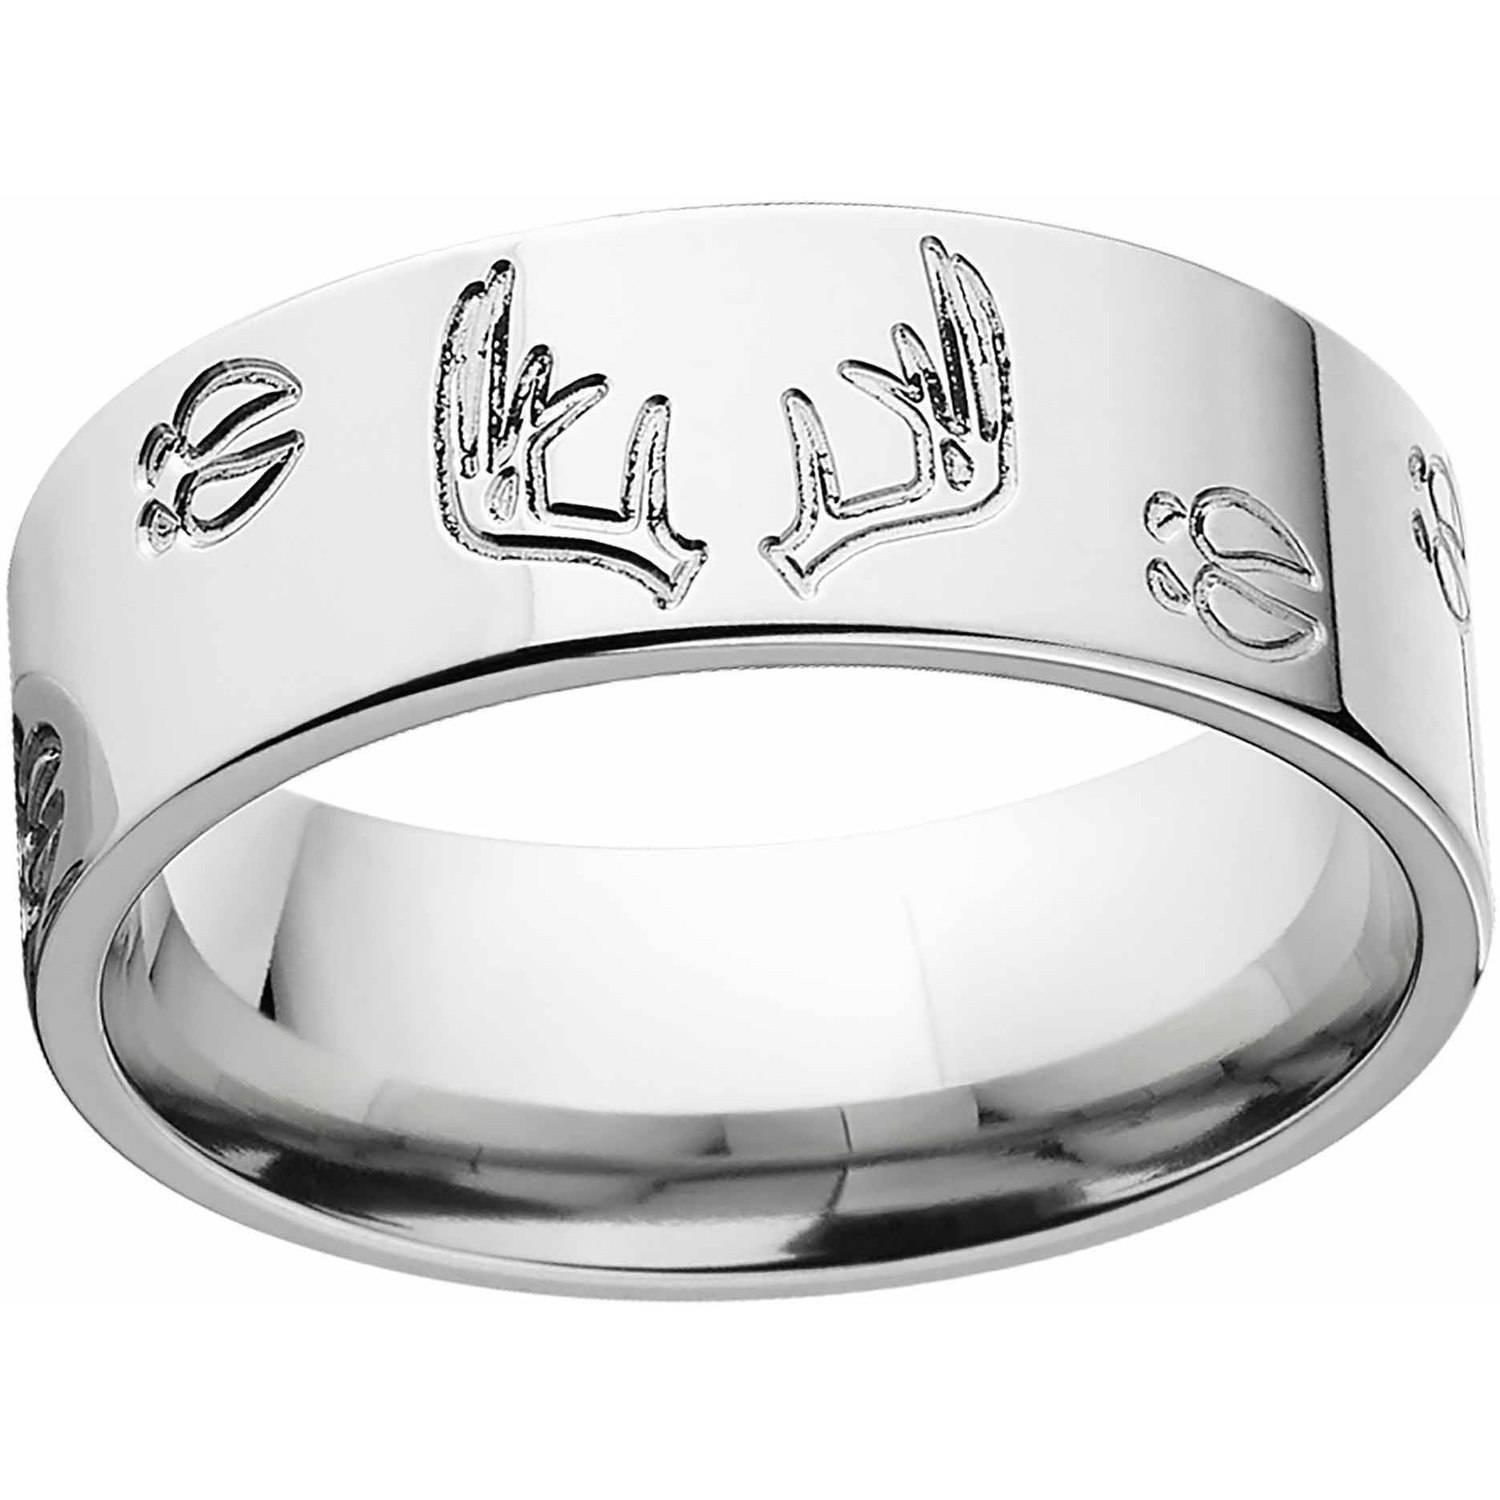 Men S Deer Track And Rack Durable 8mm Stainless Steel Wedding Band With Comfort Fit Design